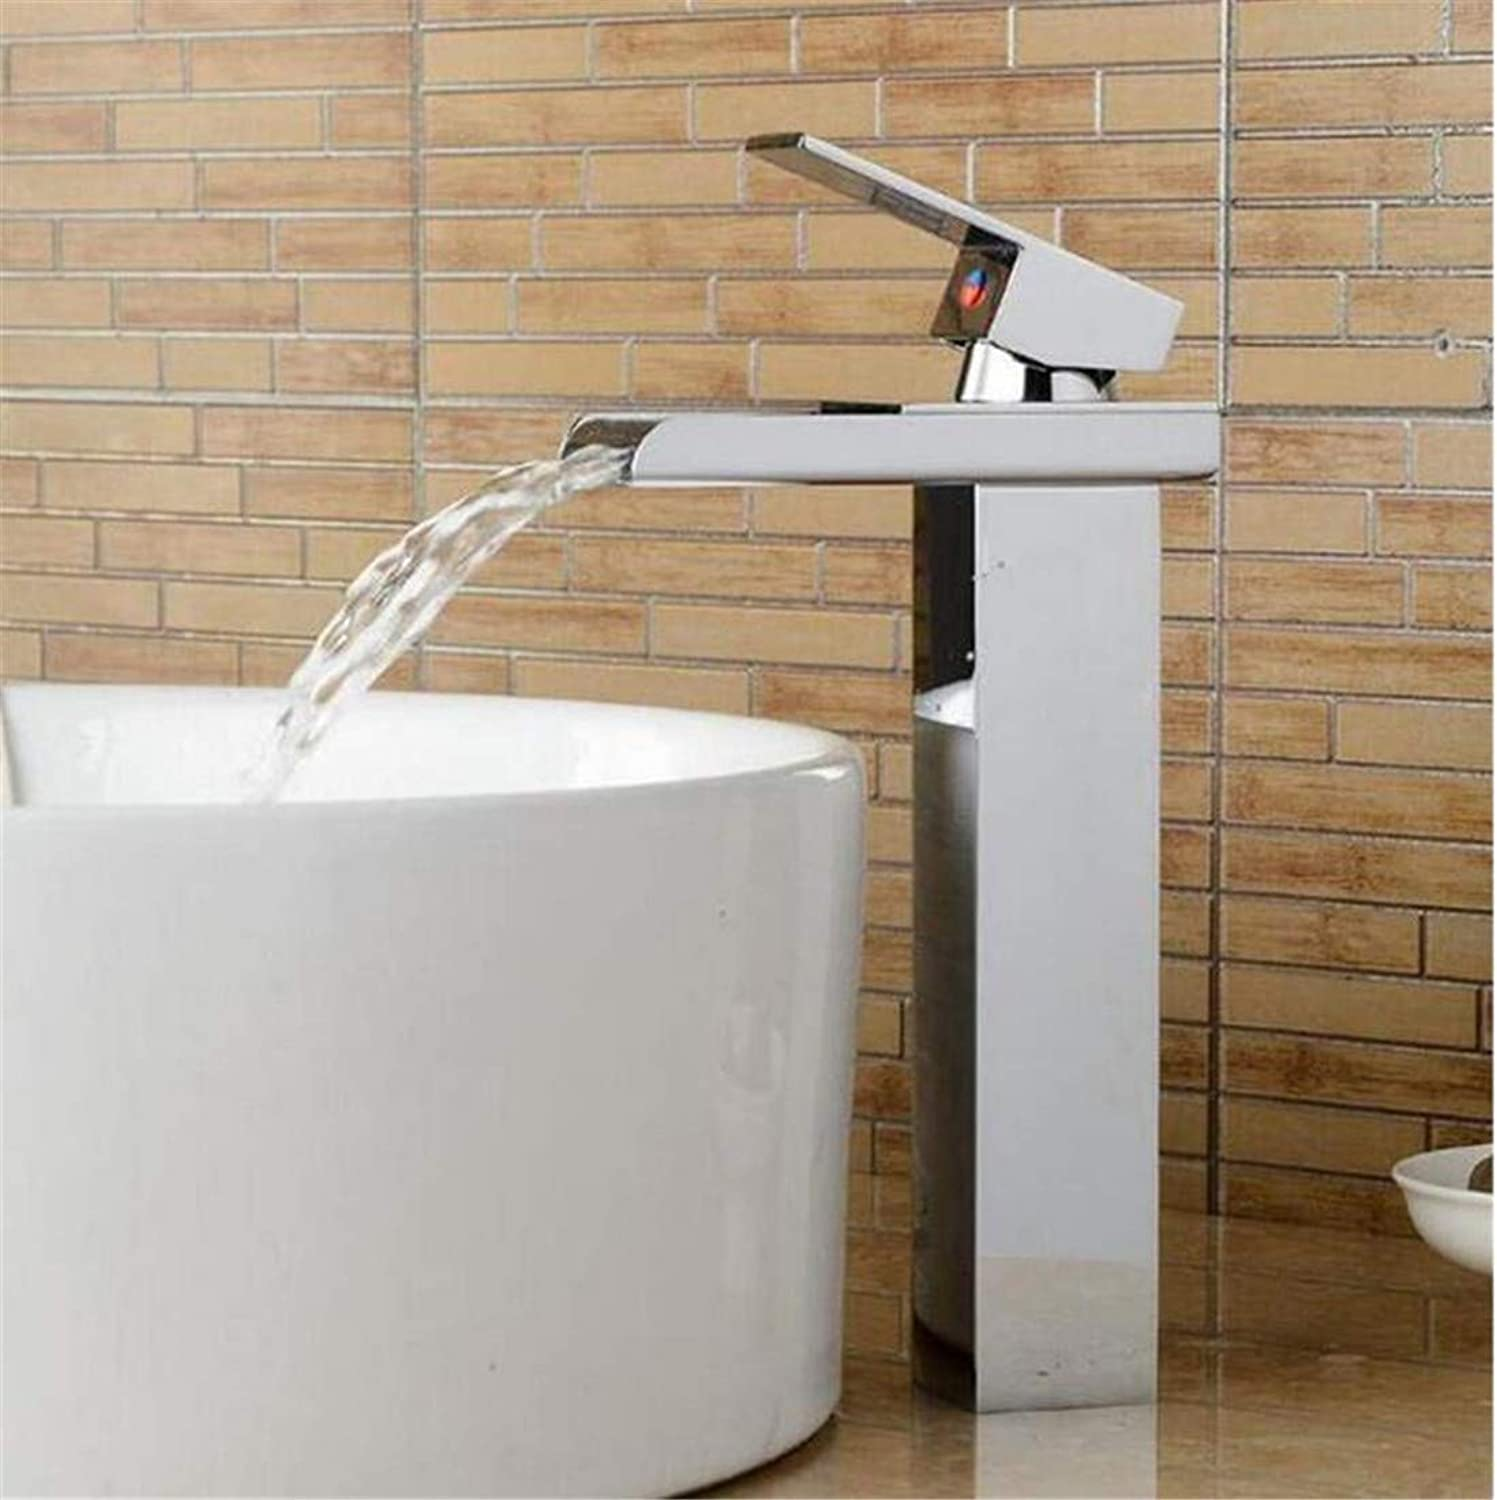 Faucet Modern Luxury Full Copper 360° redating Faucetsink Faucet Bathroom Sink Faucet Waterfall Crane Mixer Water Tap